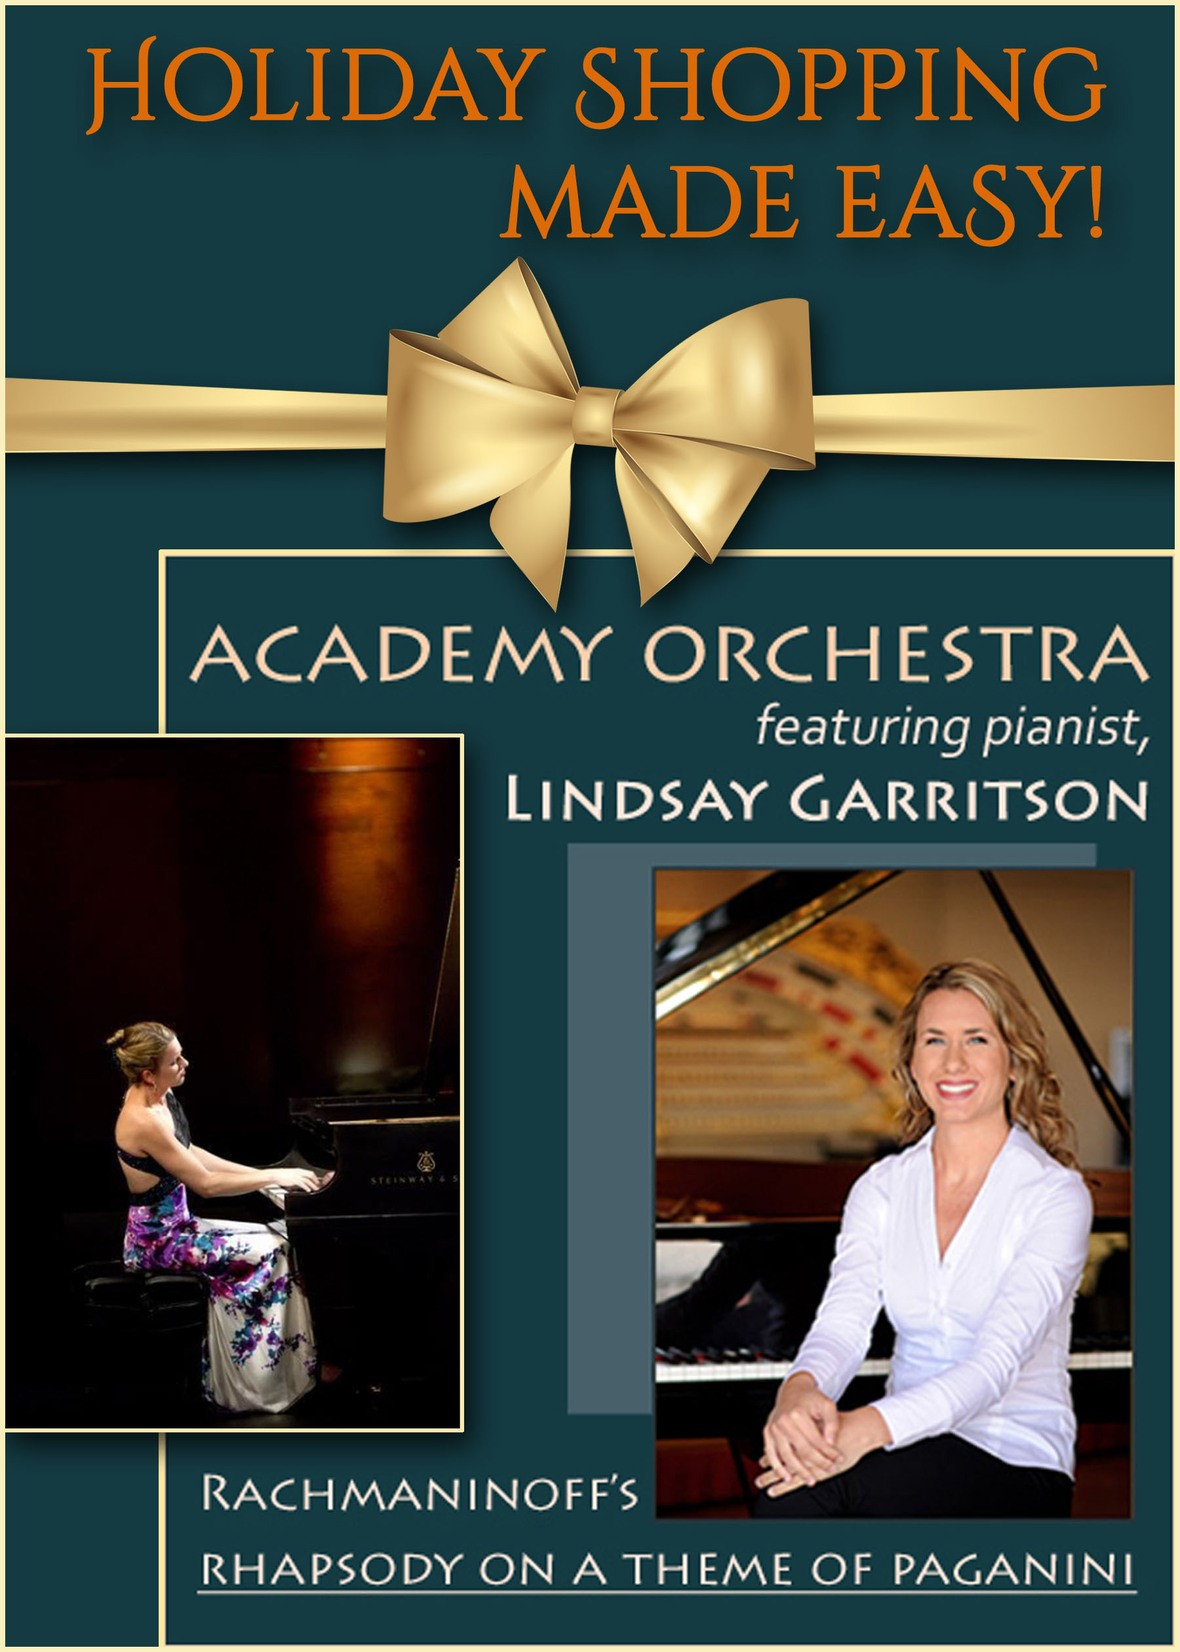 Academy Orchestra featuring pianist, Lindsay Garritson